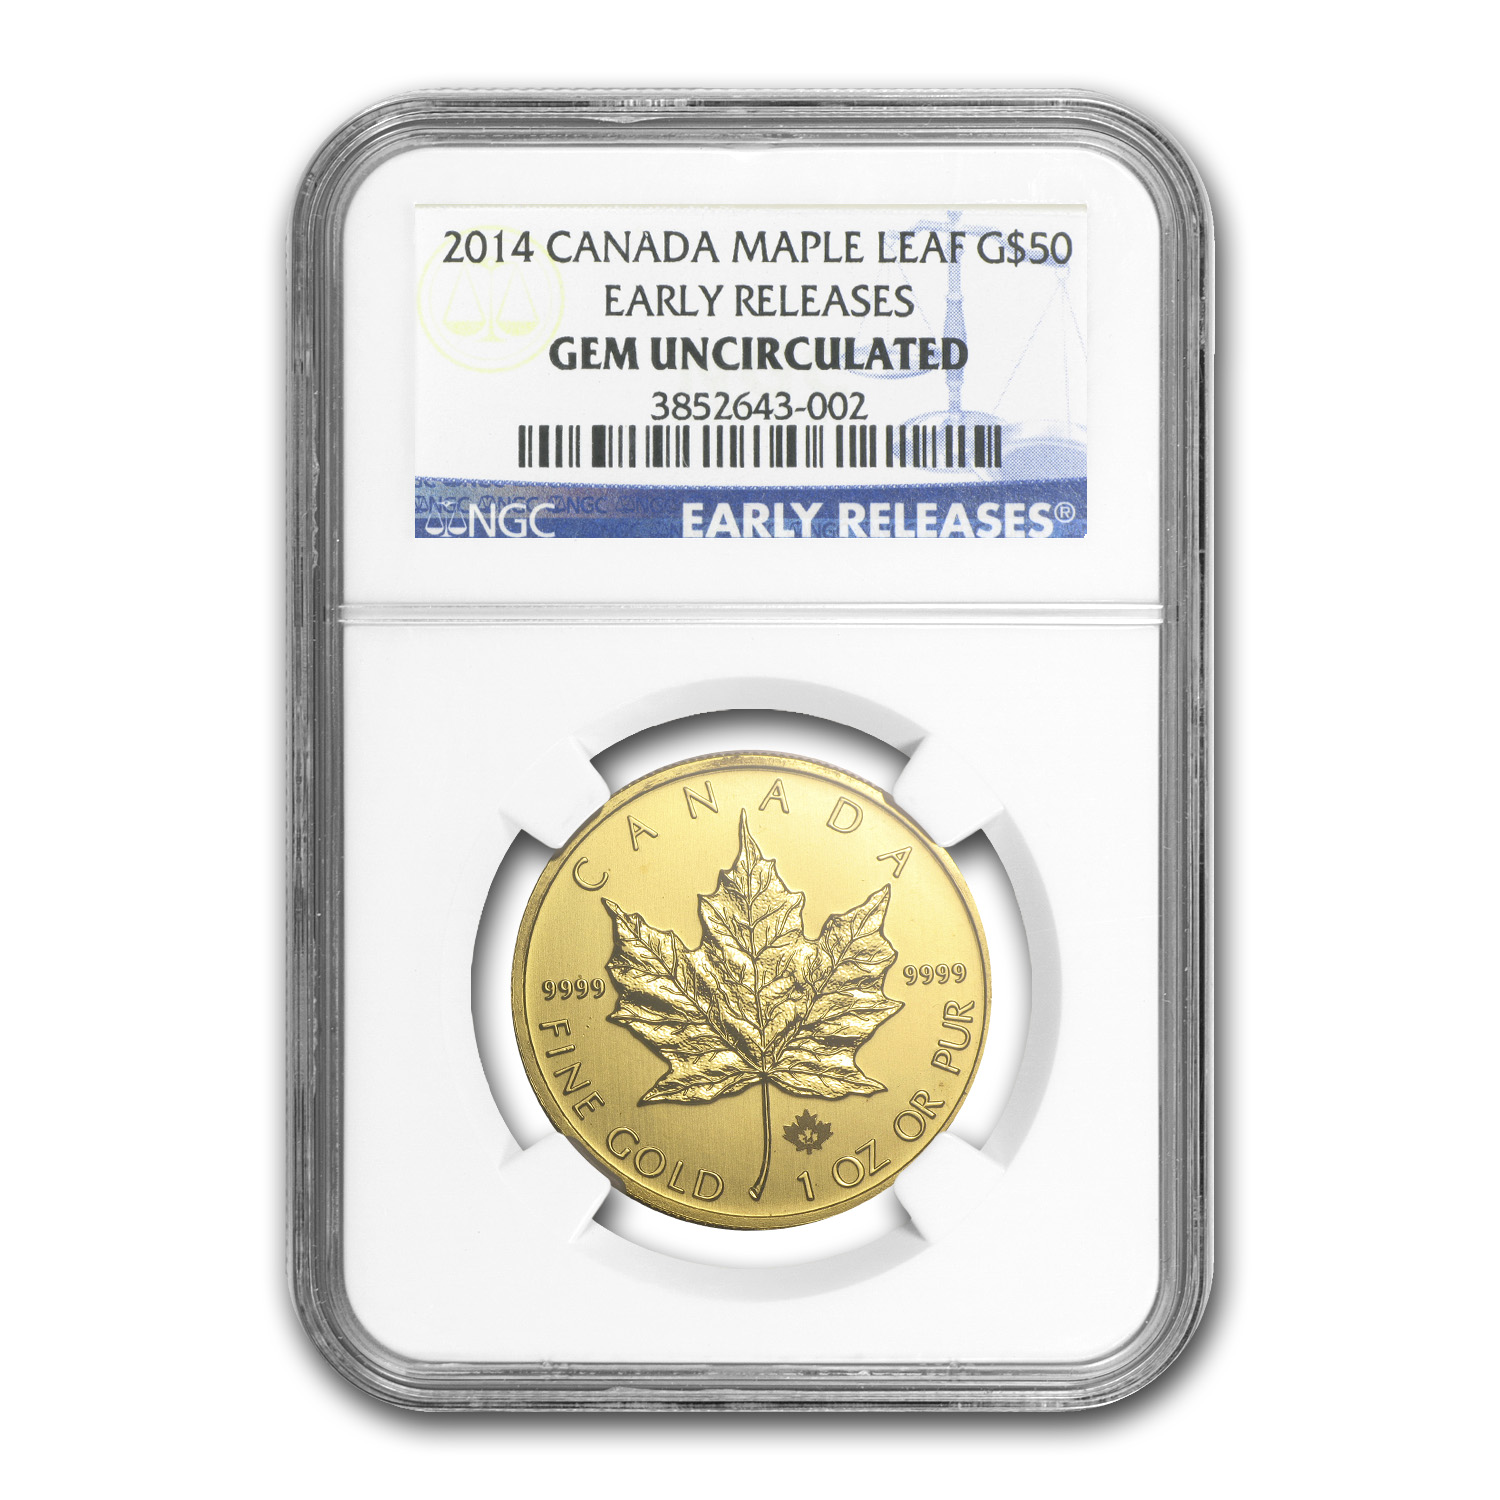 2014 Canada 1 oz Gold Maple Leaf Gem Unc NGC (Early Releases)